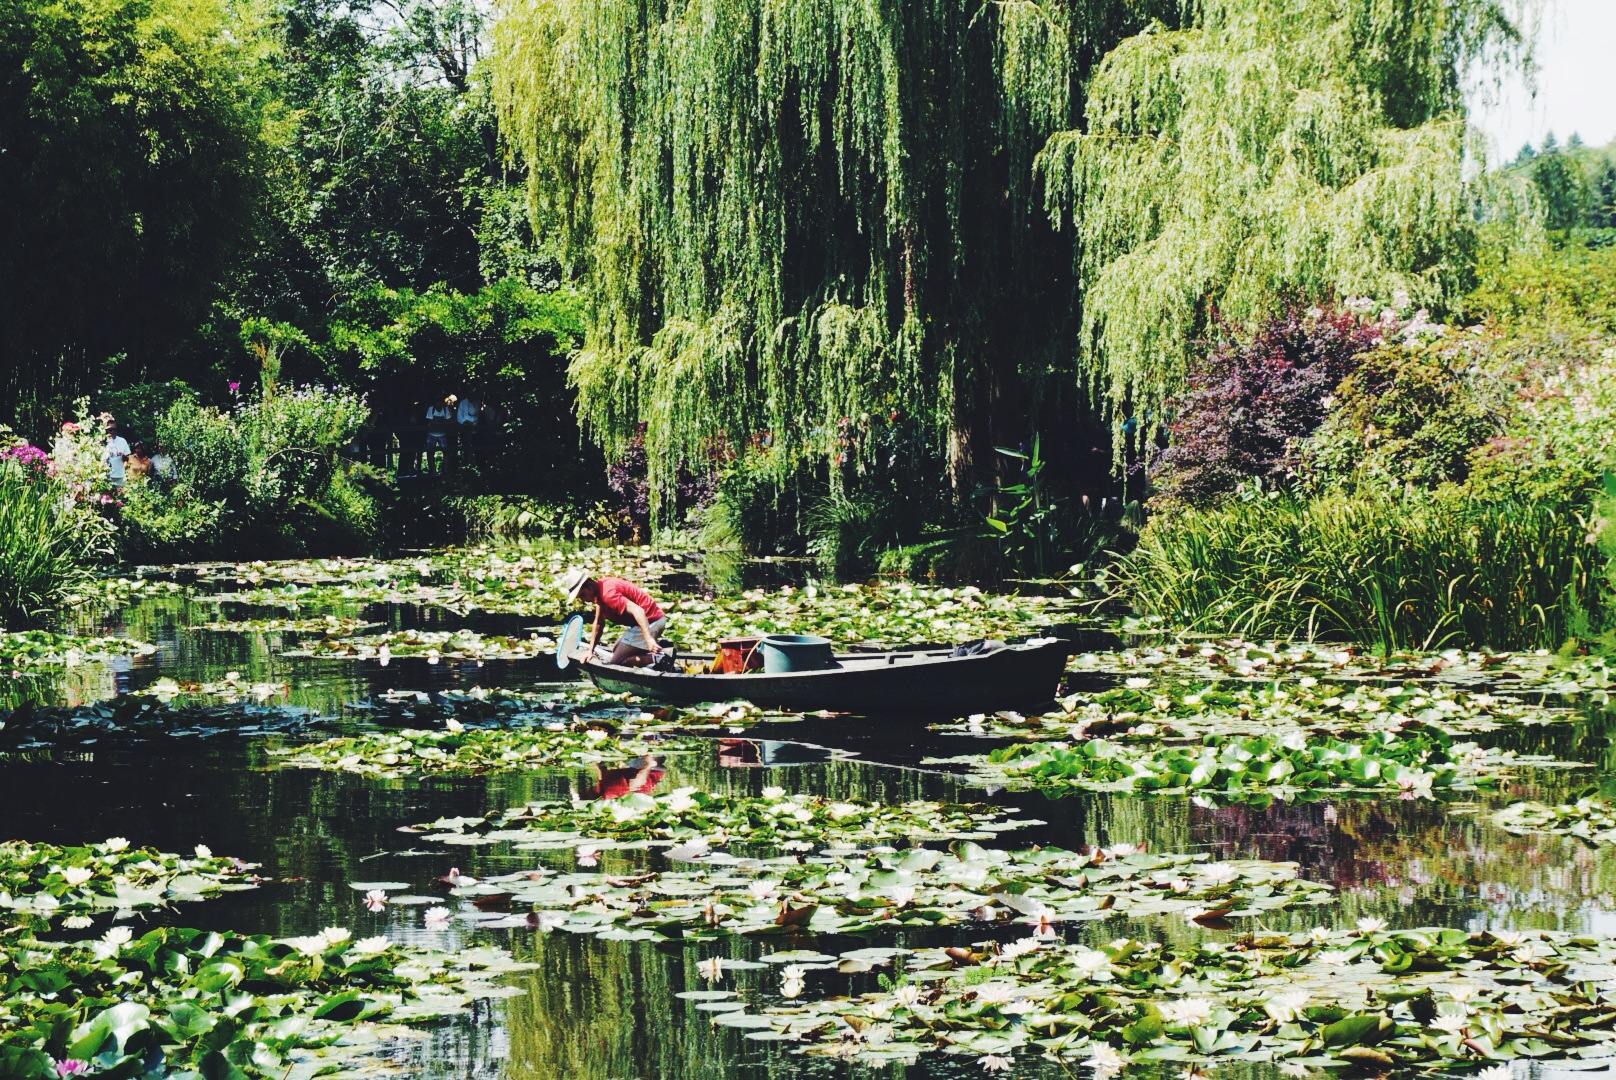 Monet Gardens in Giverny